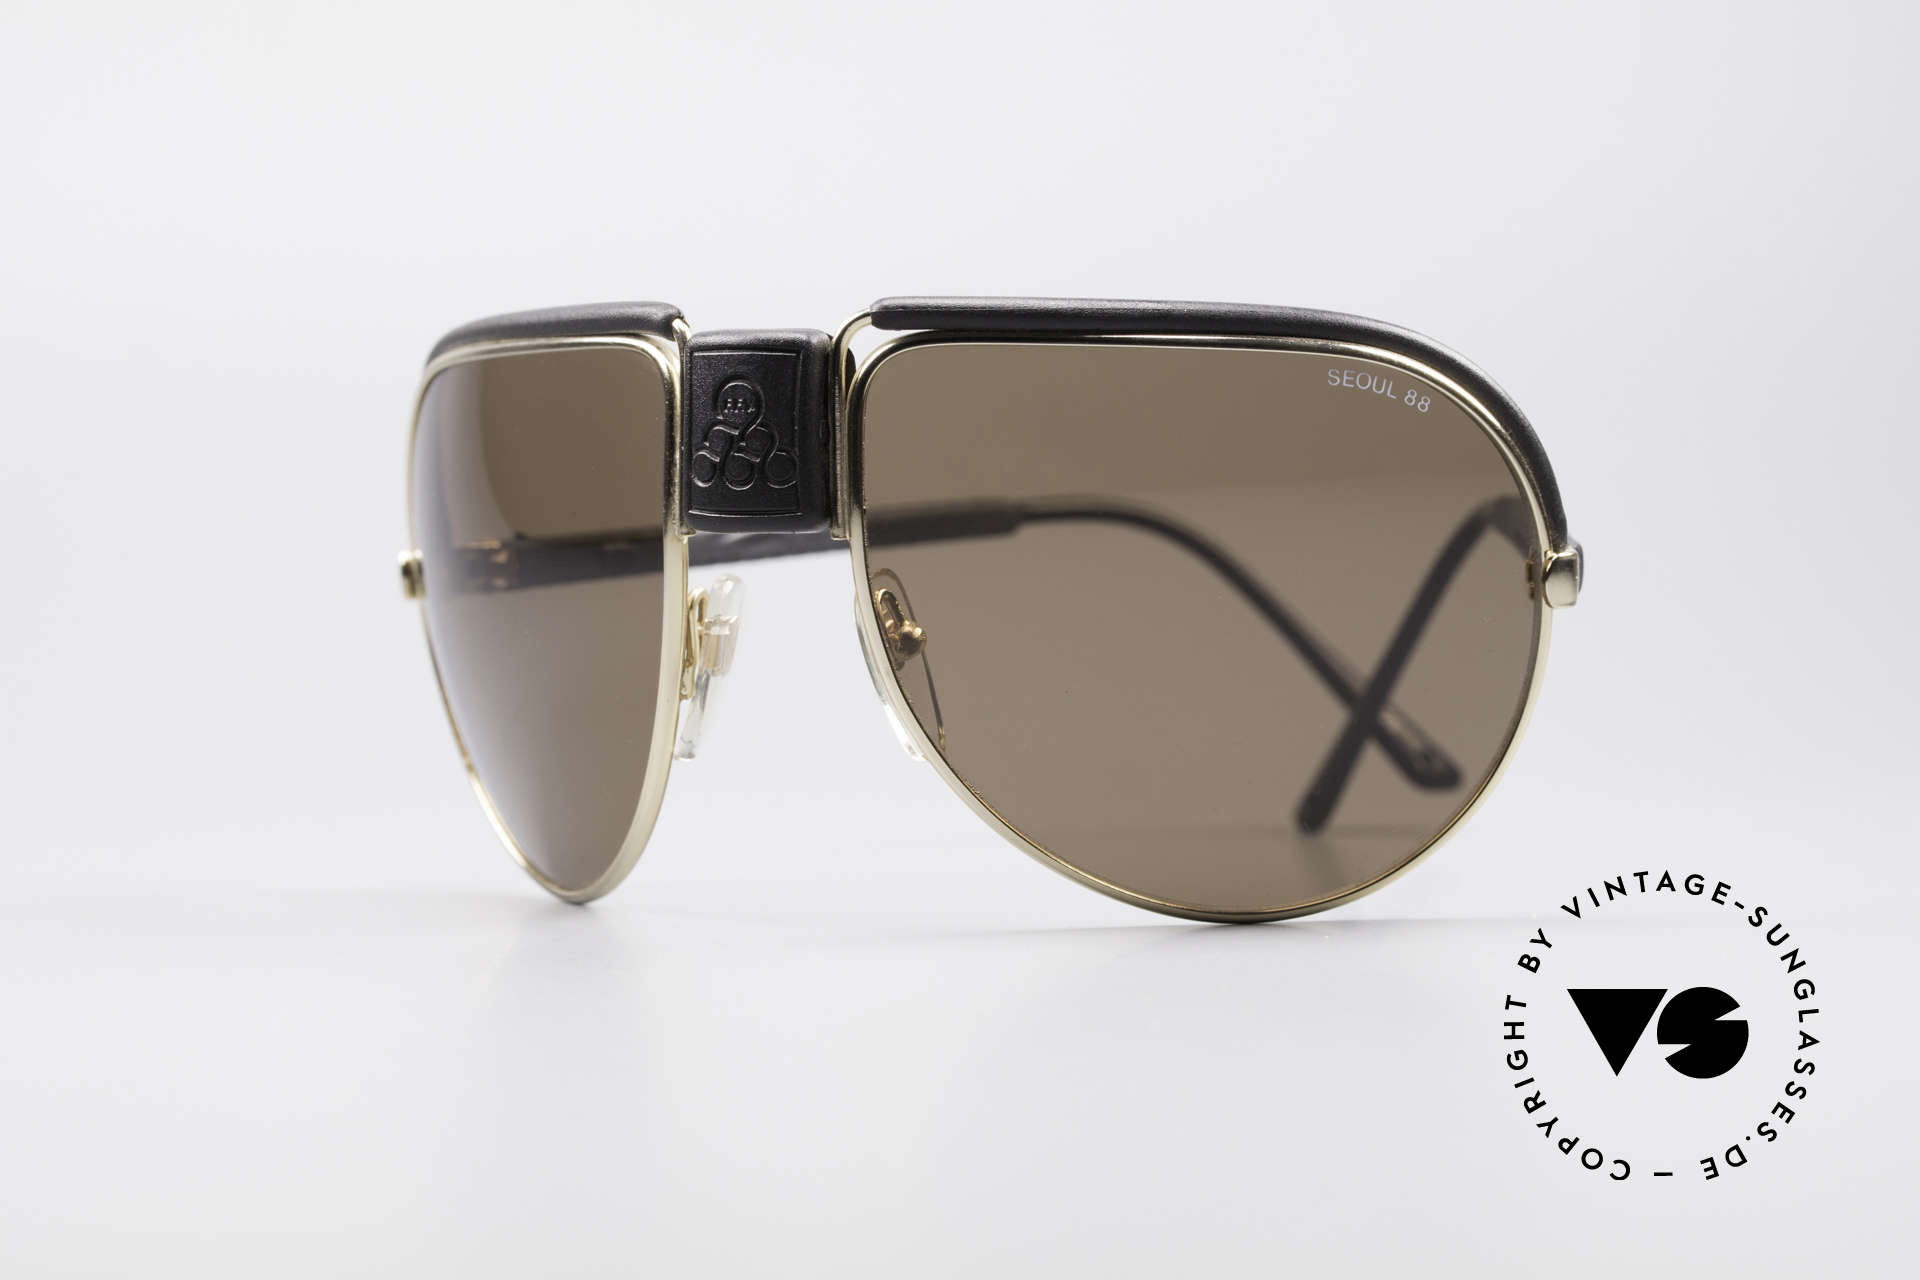 Cebe Seoul 88 Olympic Games Sunglasses, CEBE vintage shades - made for extreme sports purpose, Made for Men